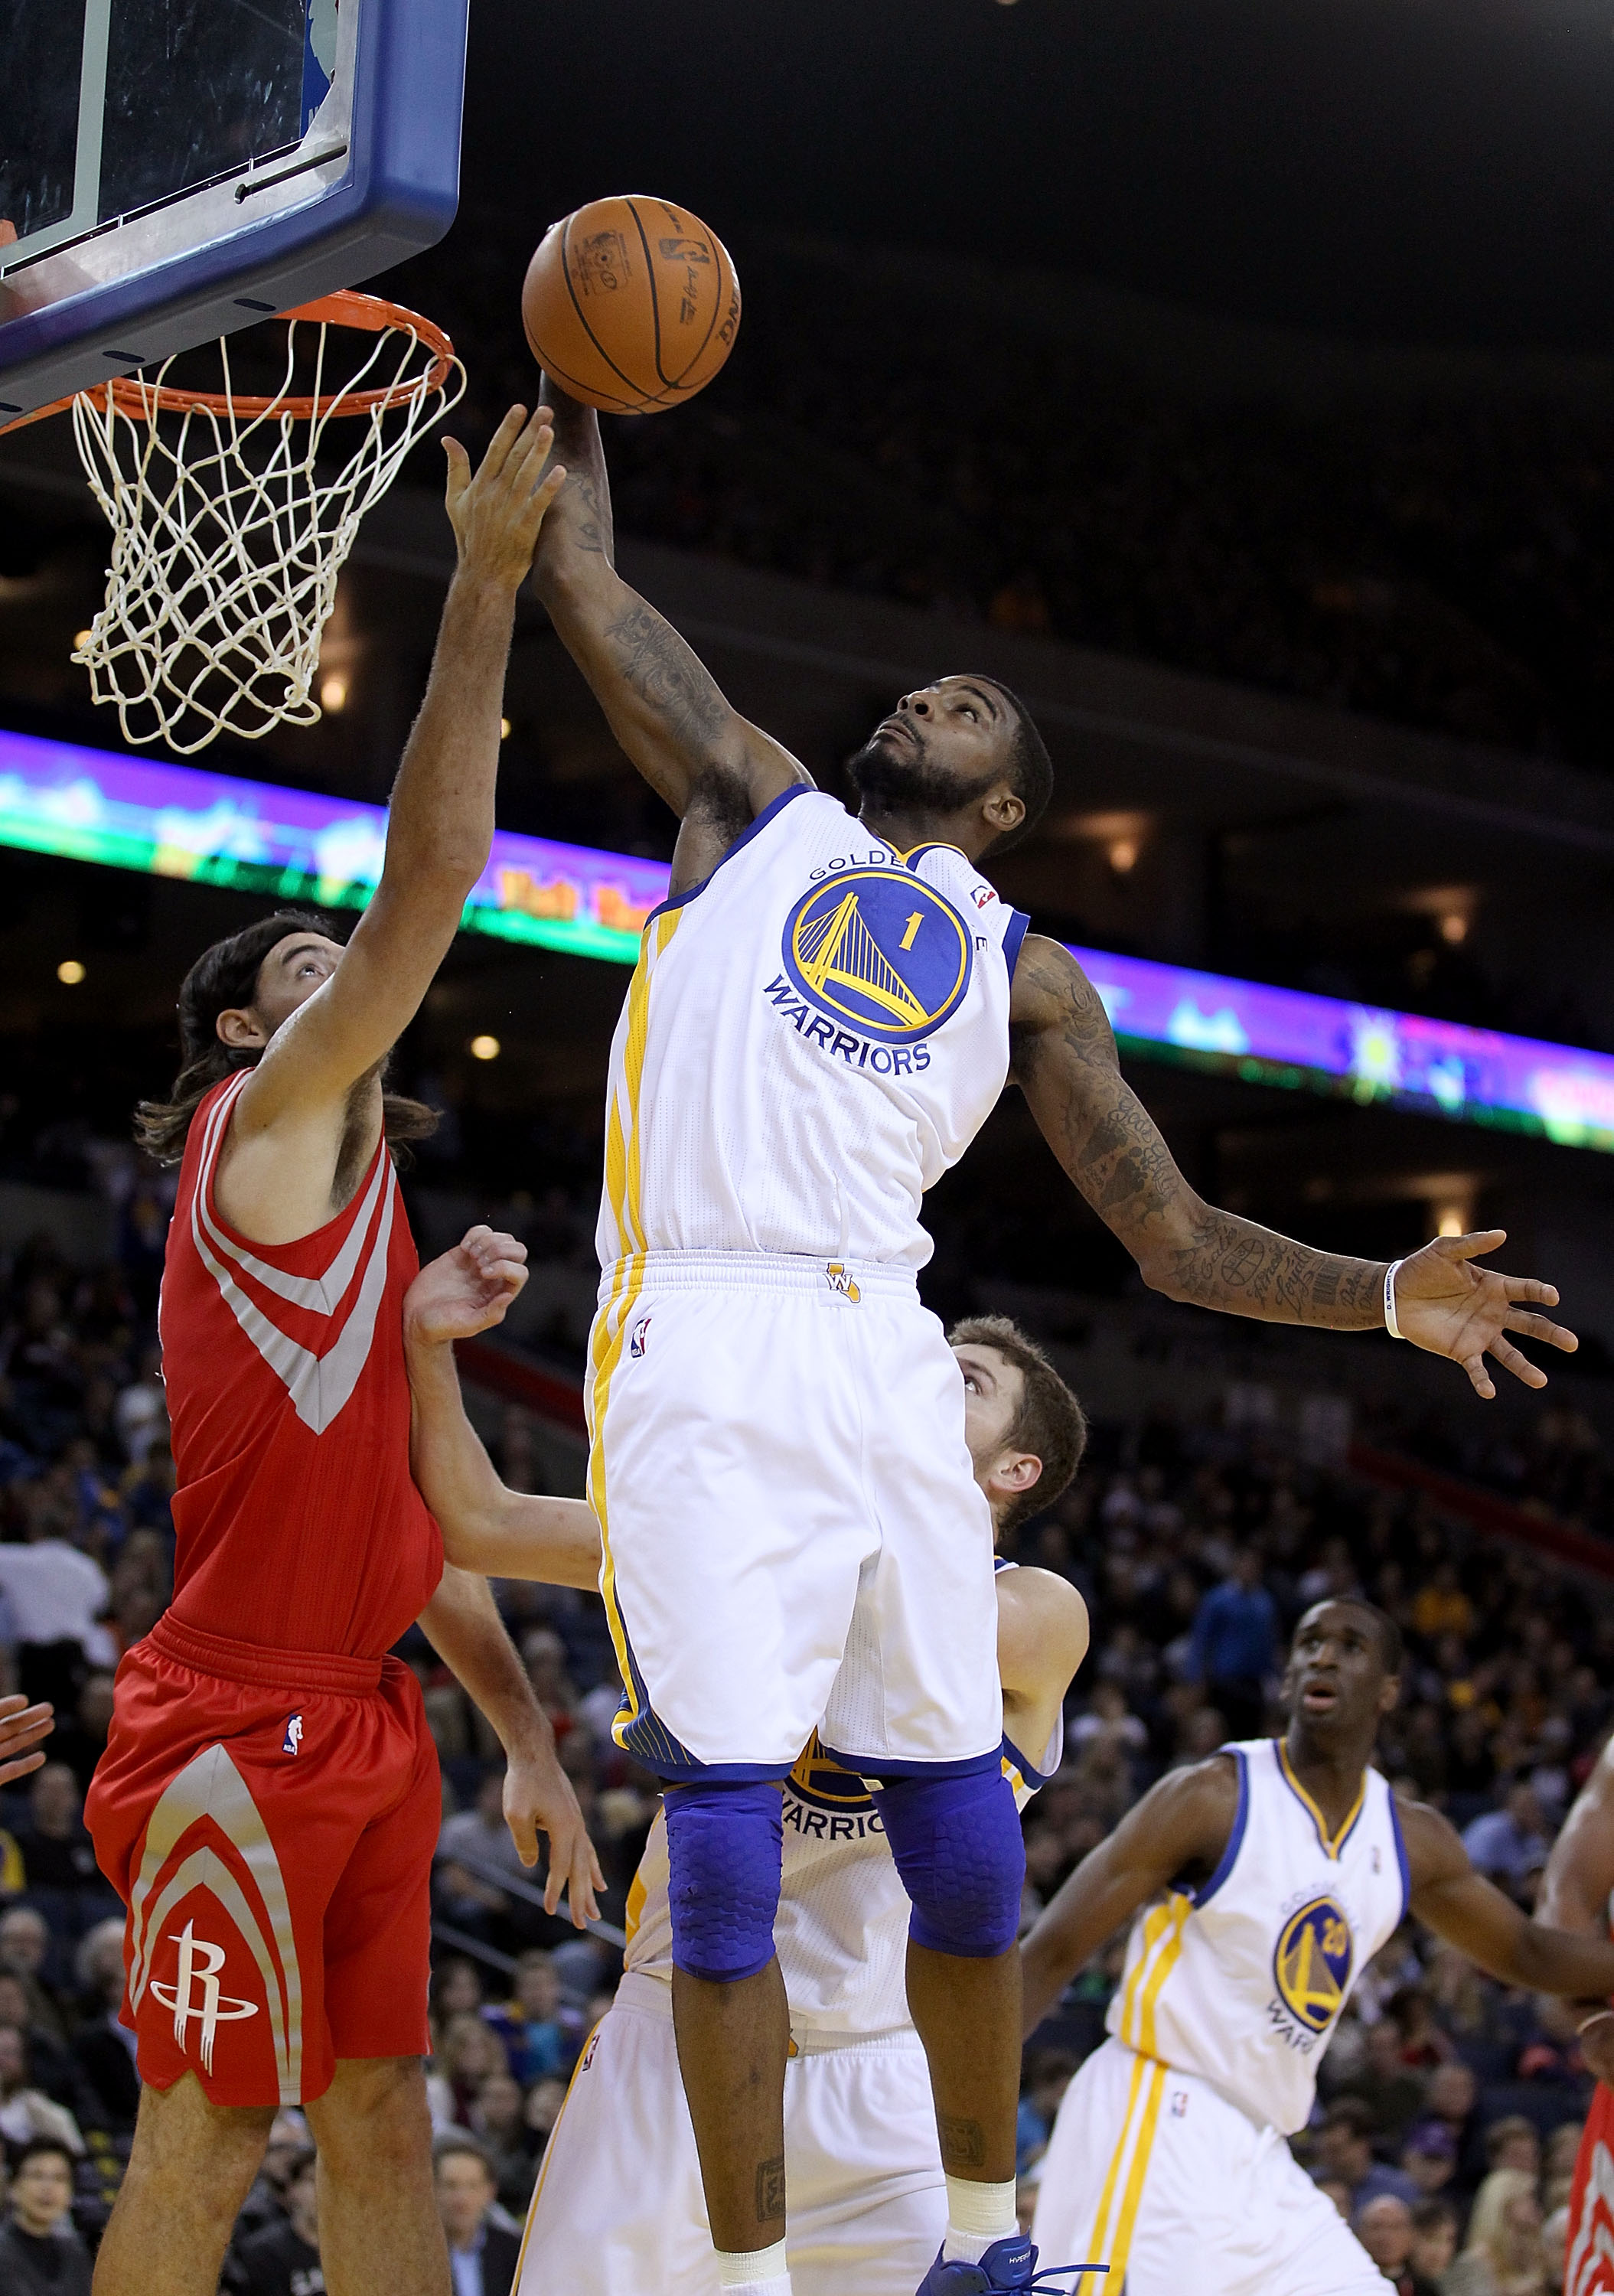 OAKLAND, CA - DECEMBER 20:  Dorell Wright #1 of the Golden State Warriors grabs a rebound over Luis Scola #4 of the Houston Rockets at Oracle Arena on December 20, 2010 in Oakland, California. NOTE TO USER: User expressly acknowledges and agrees that, by